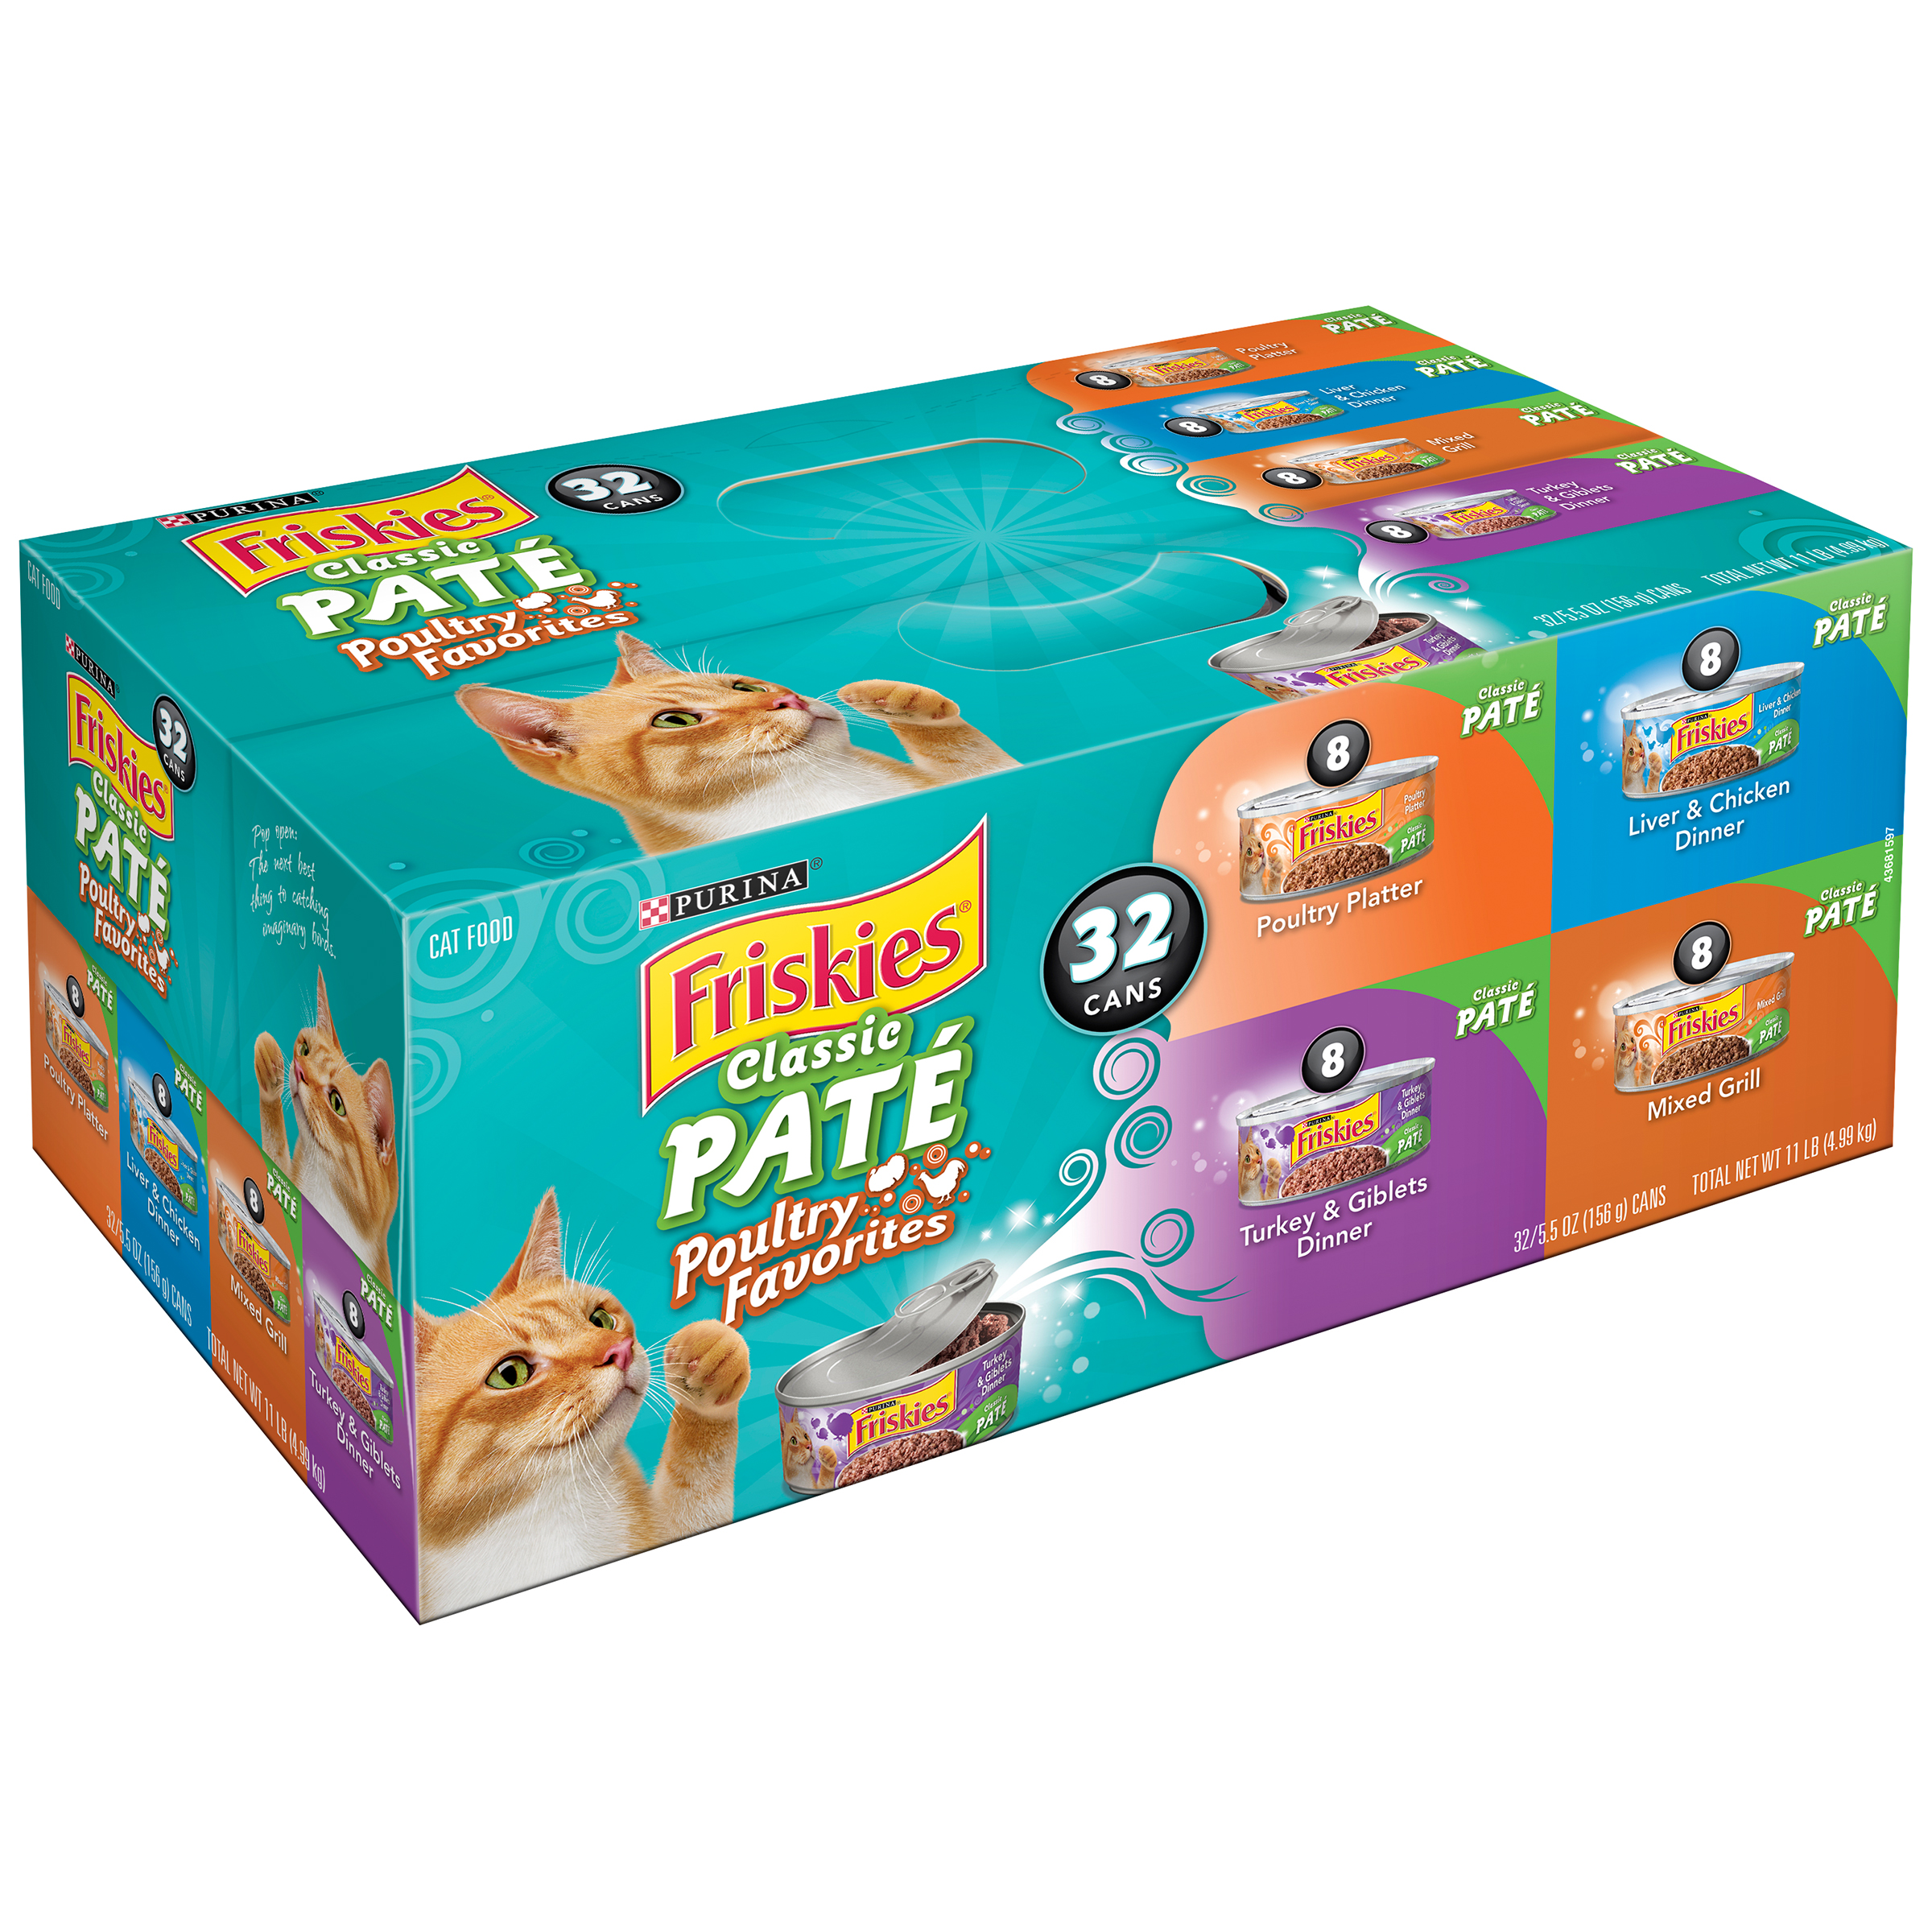 Purina Friskies Classic Paté Poultry Favorites Cat Food Variety Pack 32-5.5 oz. Cans